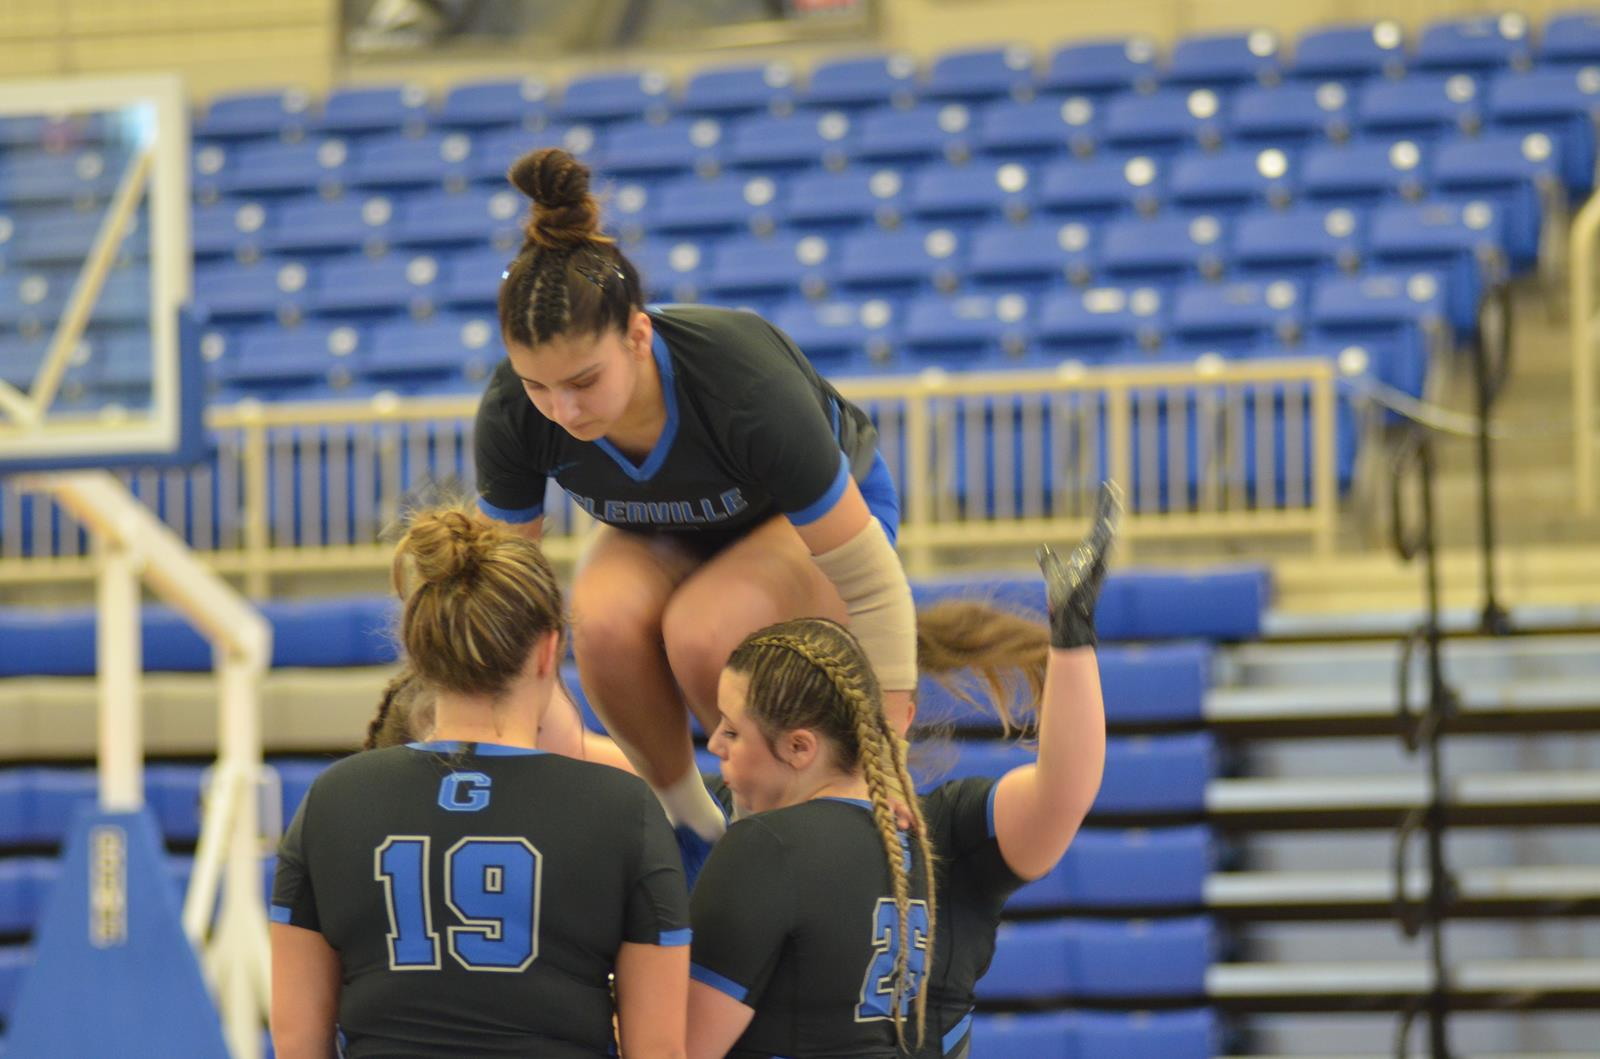 Lady Pioneers Open Season at Urbana - Glenville State ...